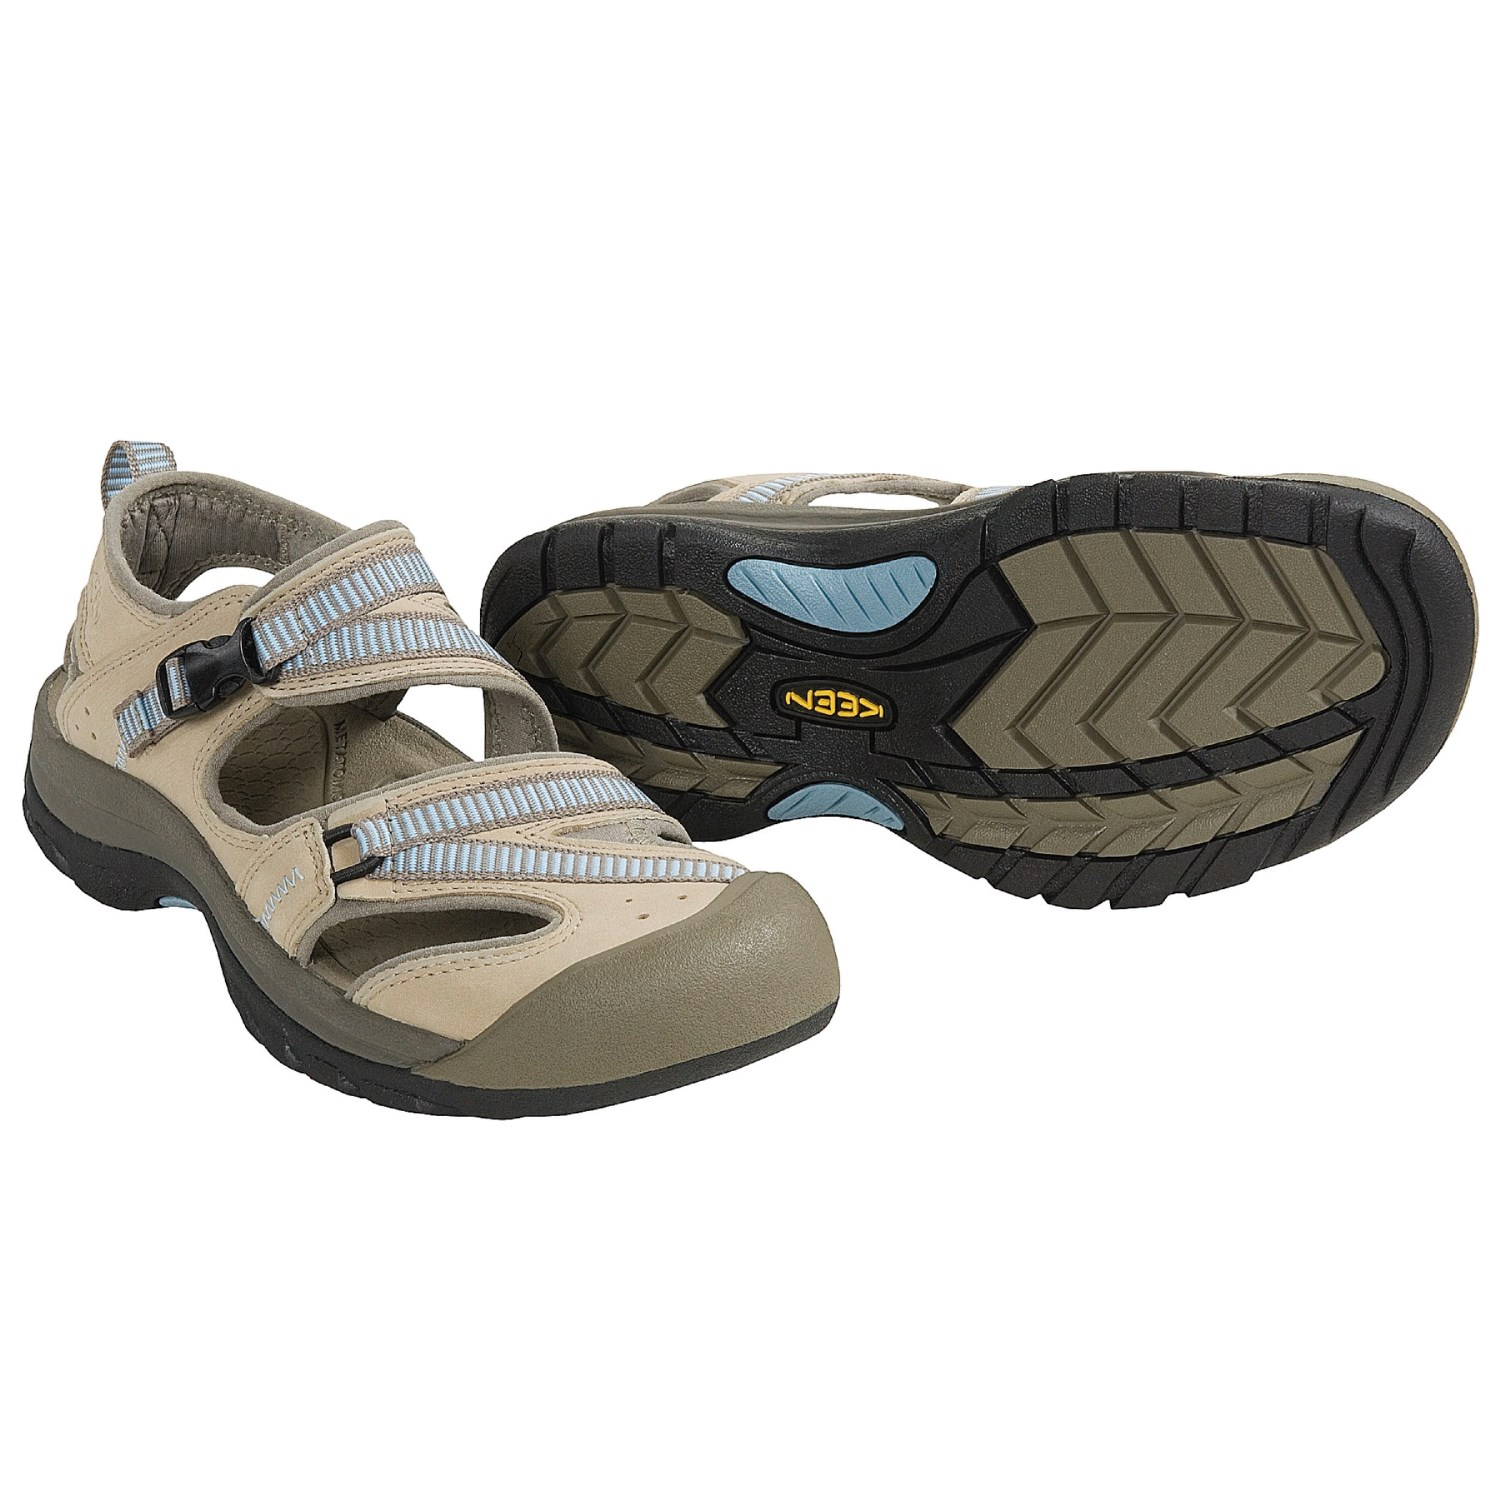 How to use a KEEN Footwear coupon